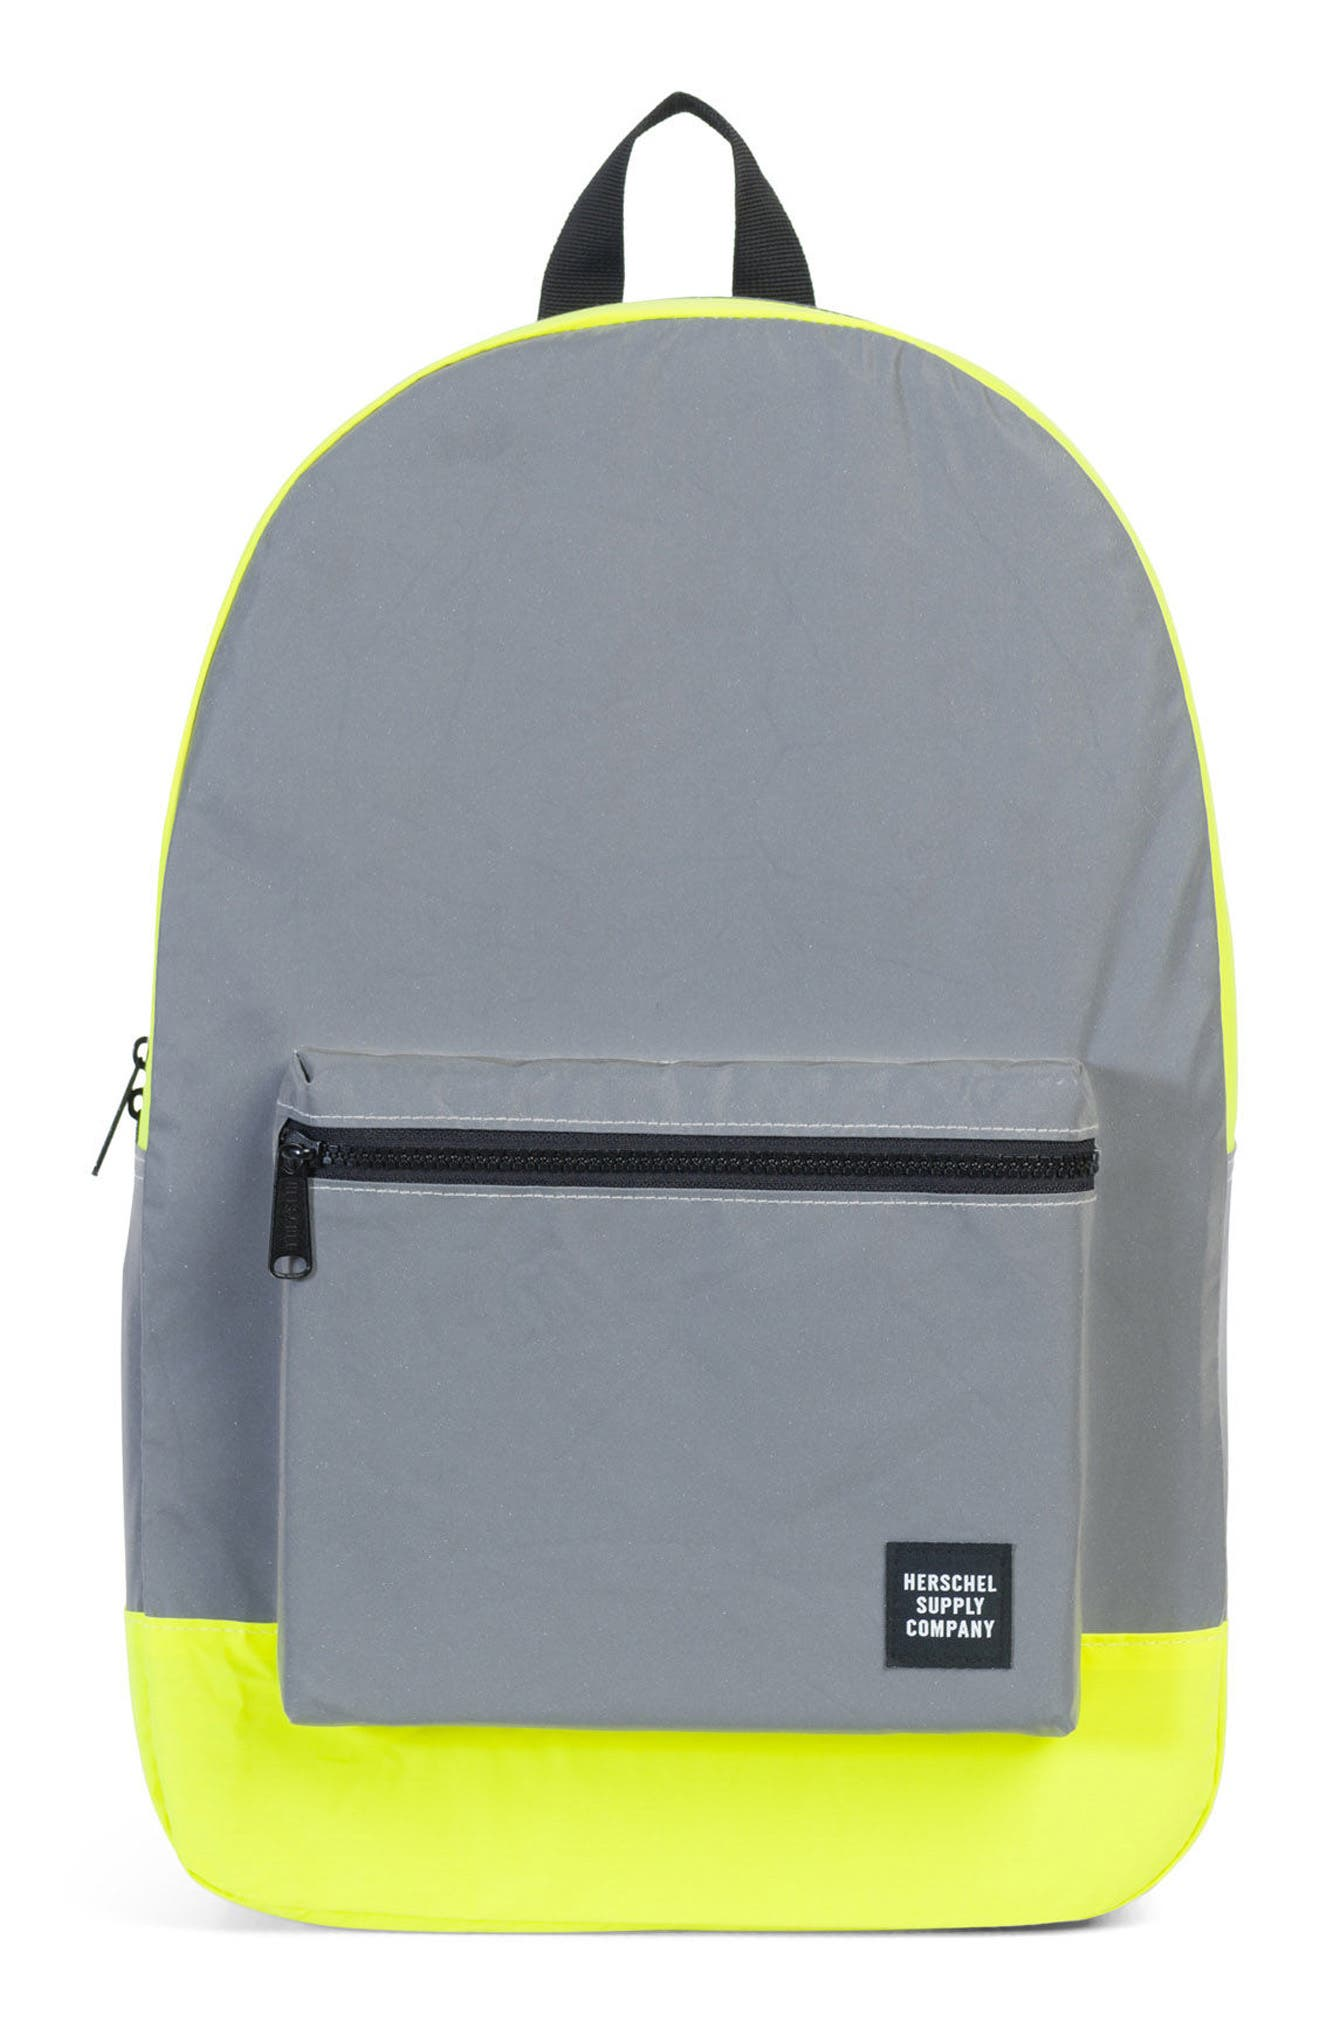 HERSCHEL SUPPLY CO. Herschell Supply Co. Packable Reflective Backpack